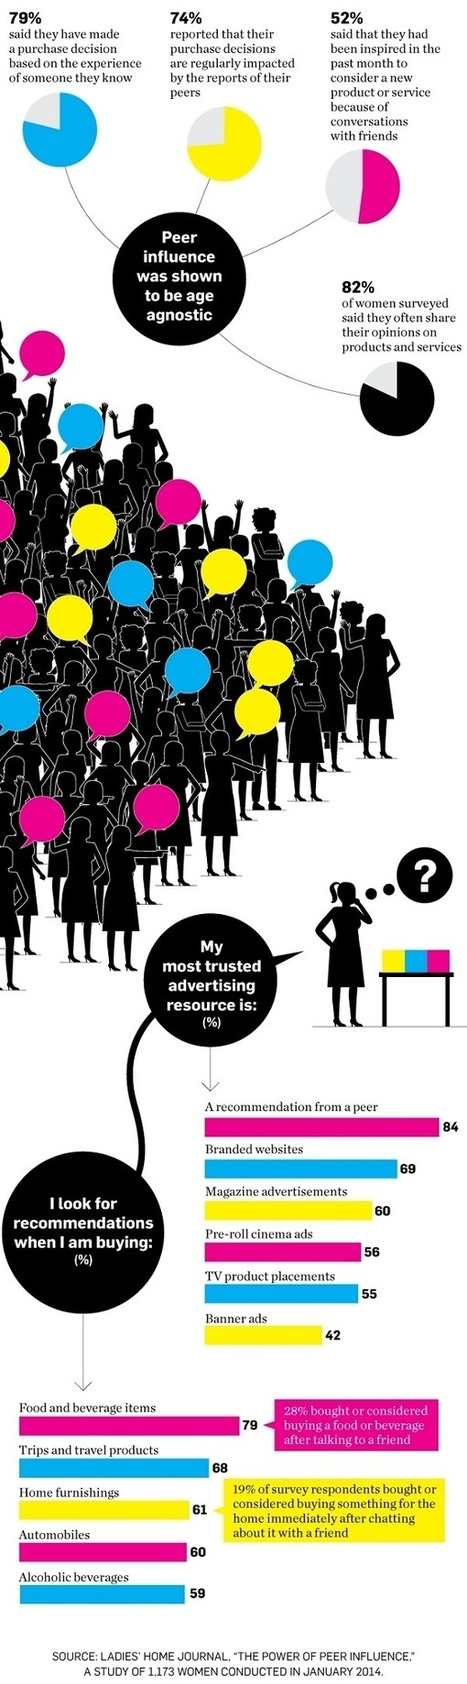 Women Trust Word-of-Mouth Recommendations From Their Friends [Infographic] | Competitive Edge | Scoop.it